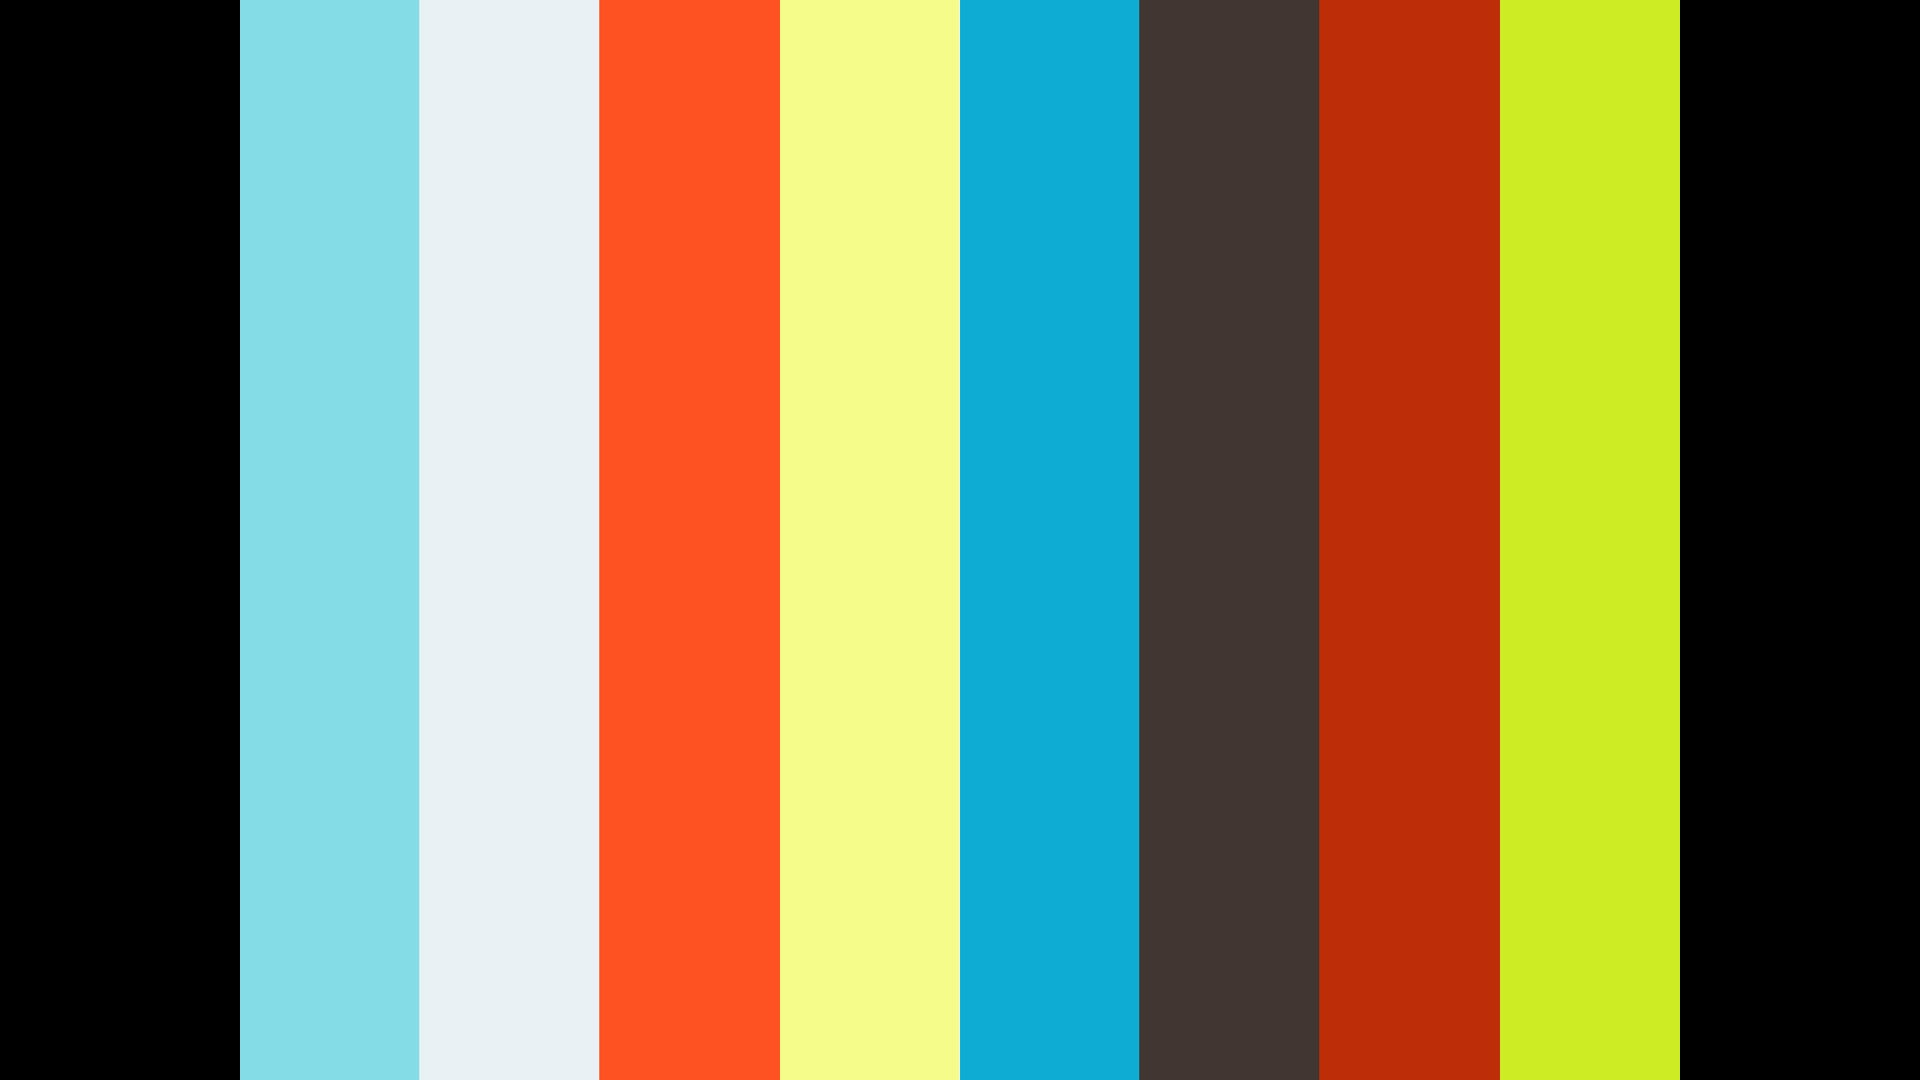 BUILDING FAITH 8-14-16